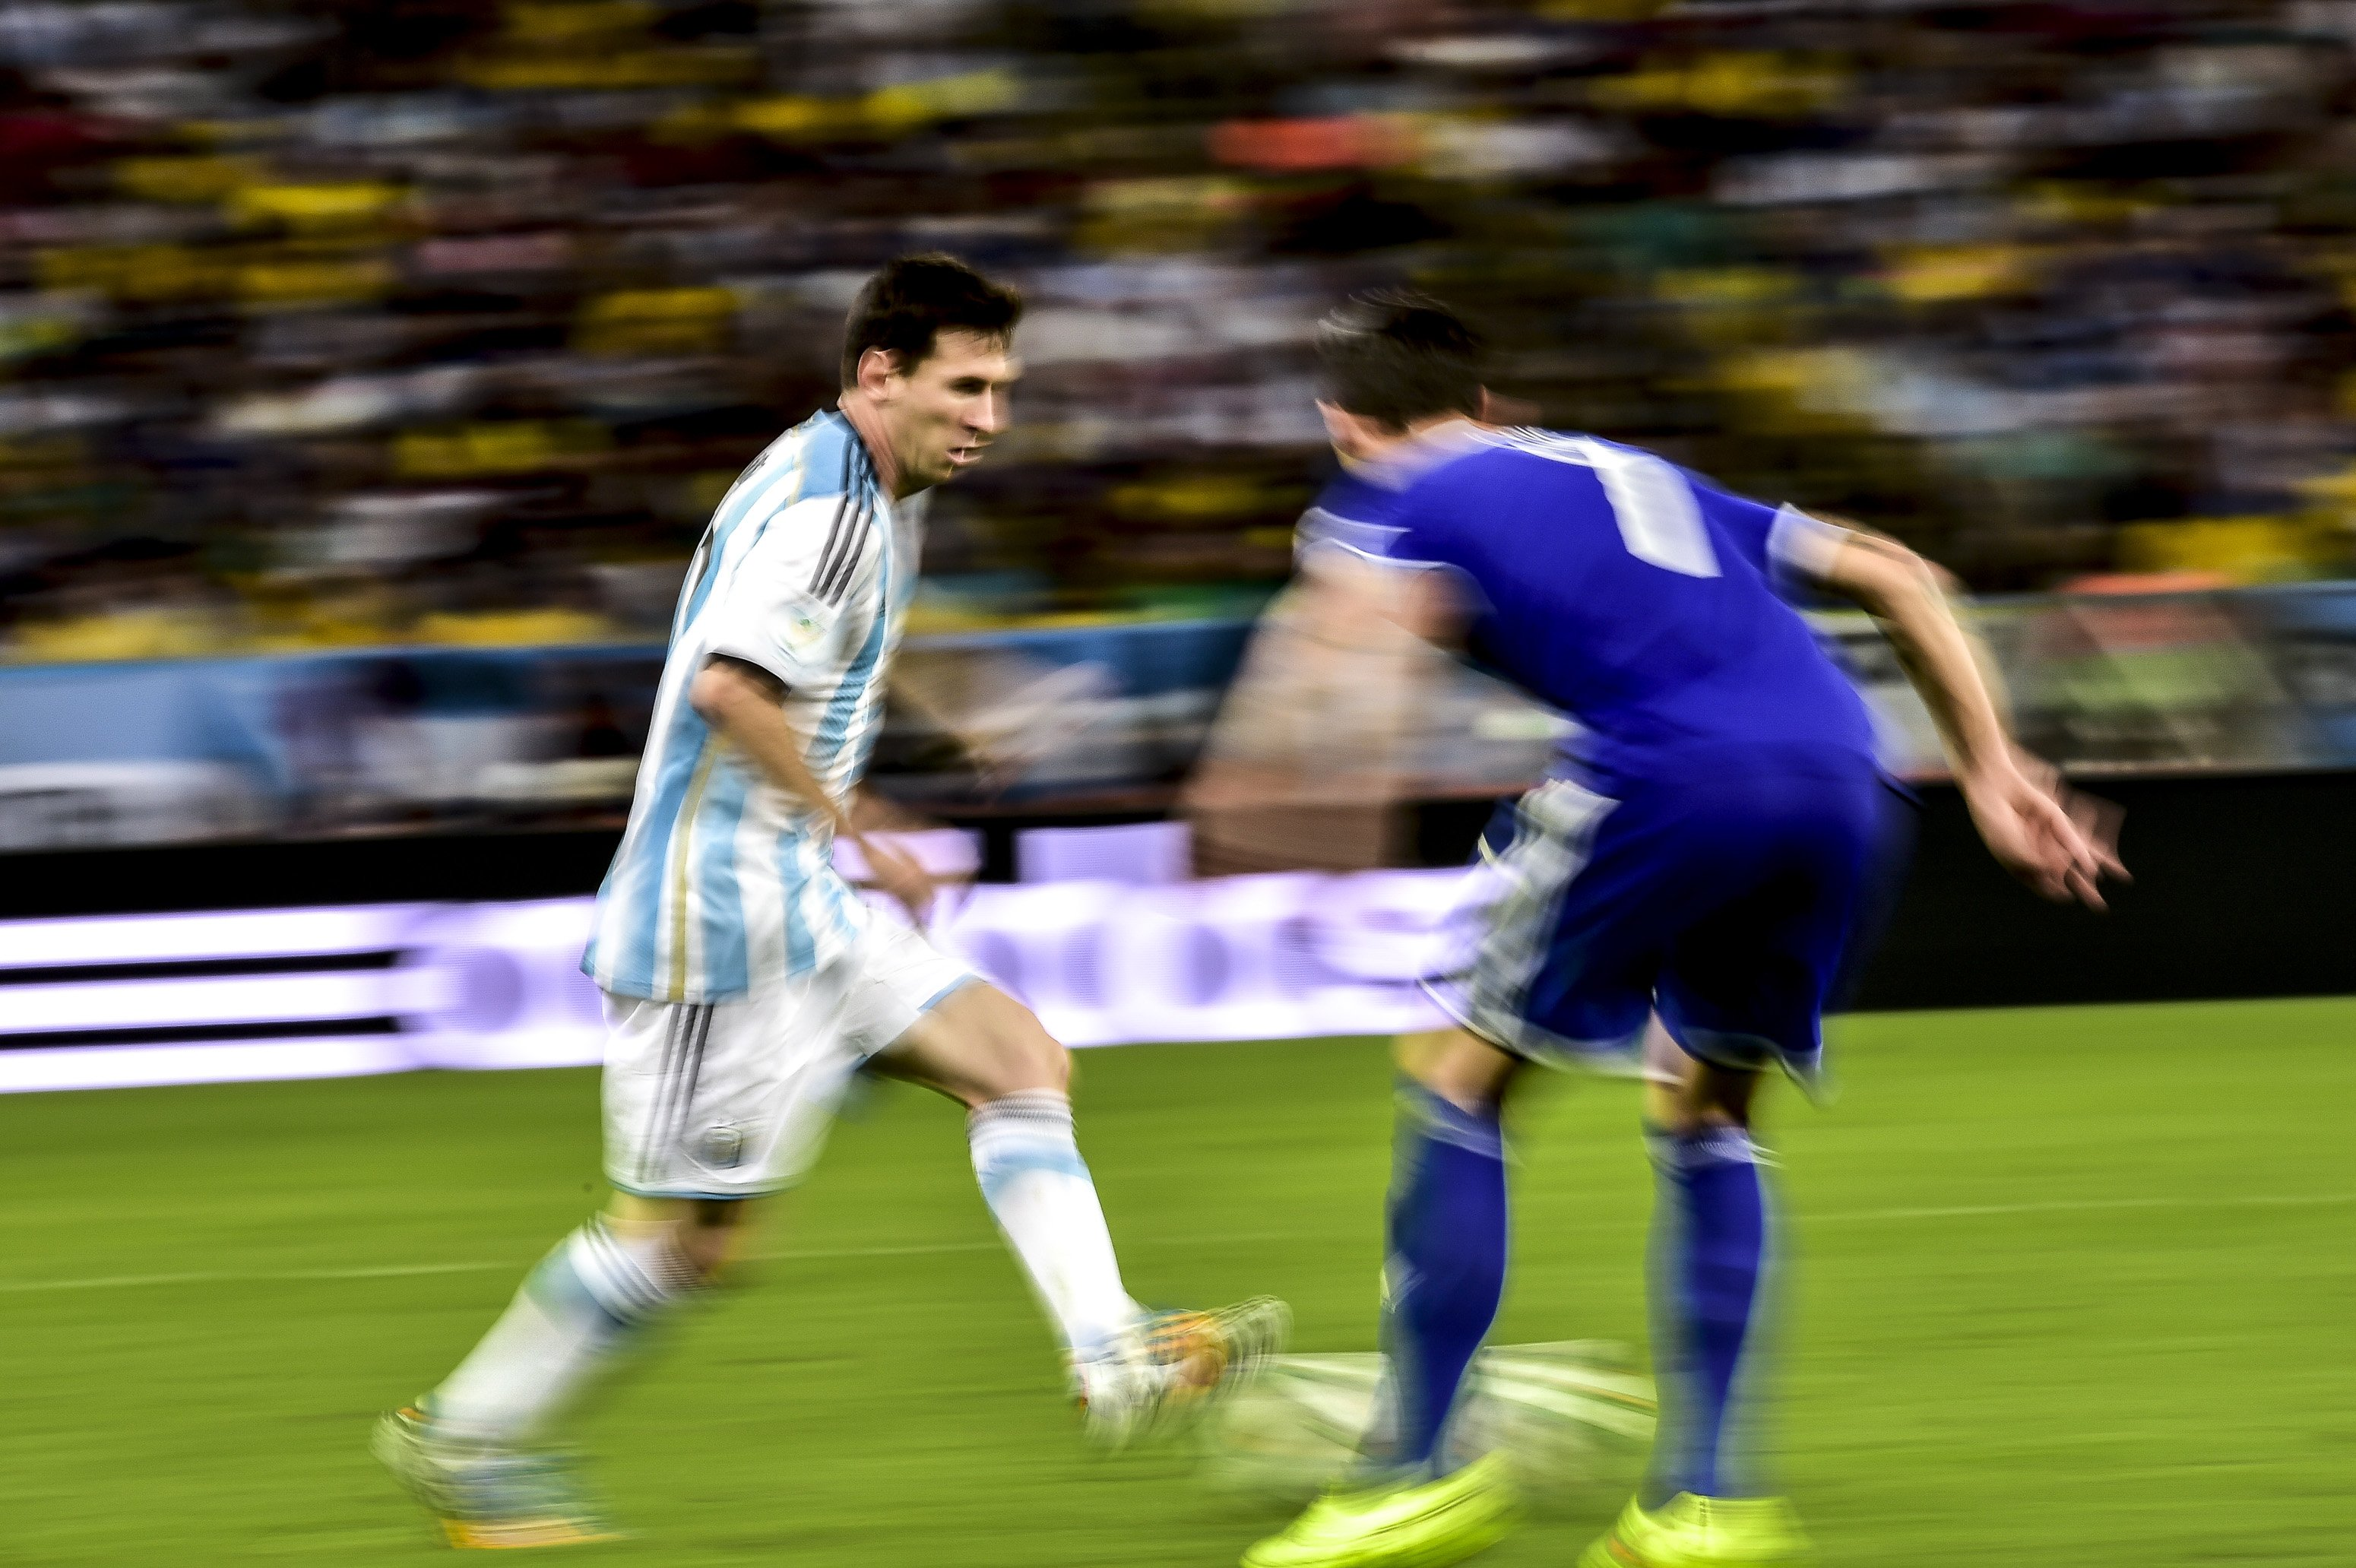 Lionel Messi during the 2014 World Cup match between Argentina and Bosnia-Herzegovina, on June 15th, 2014 in Rio de Janeiro, Brazil.